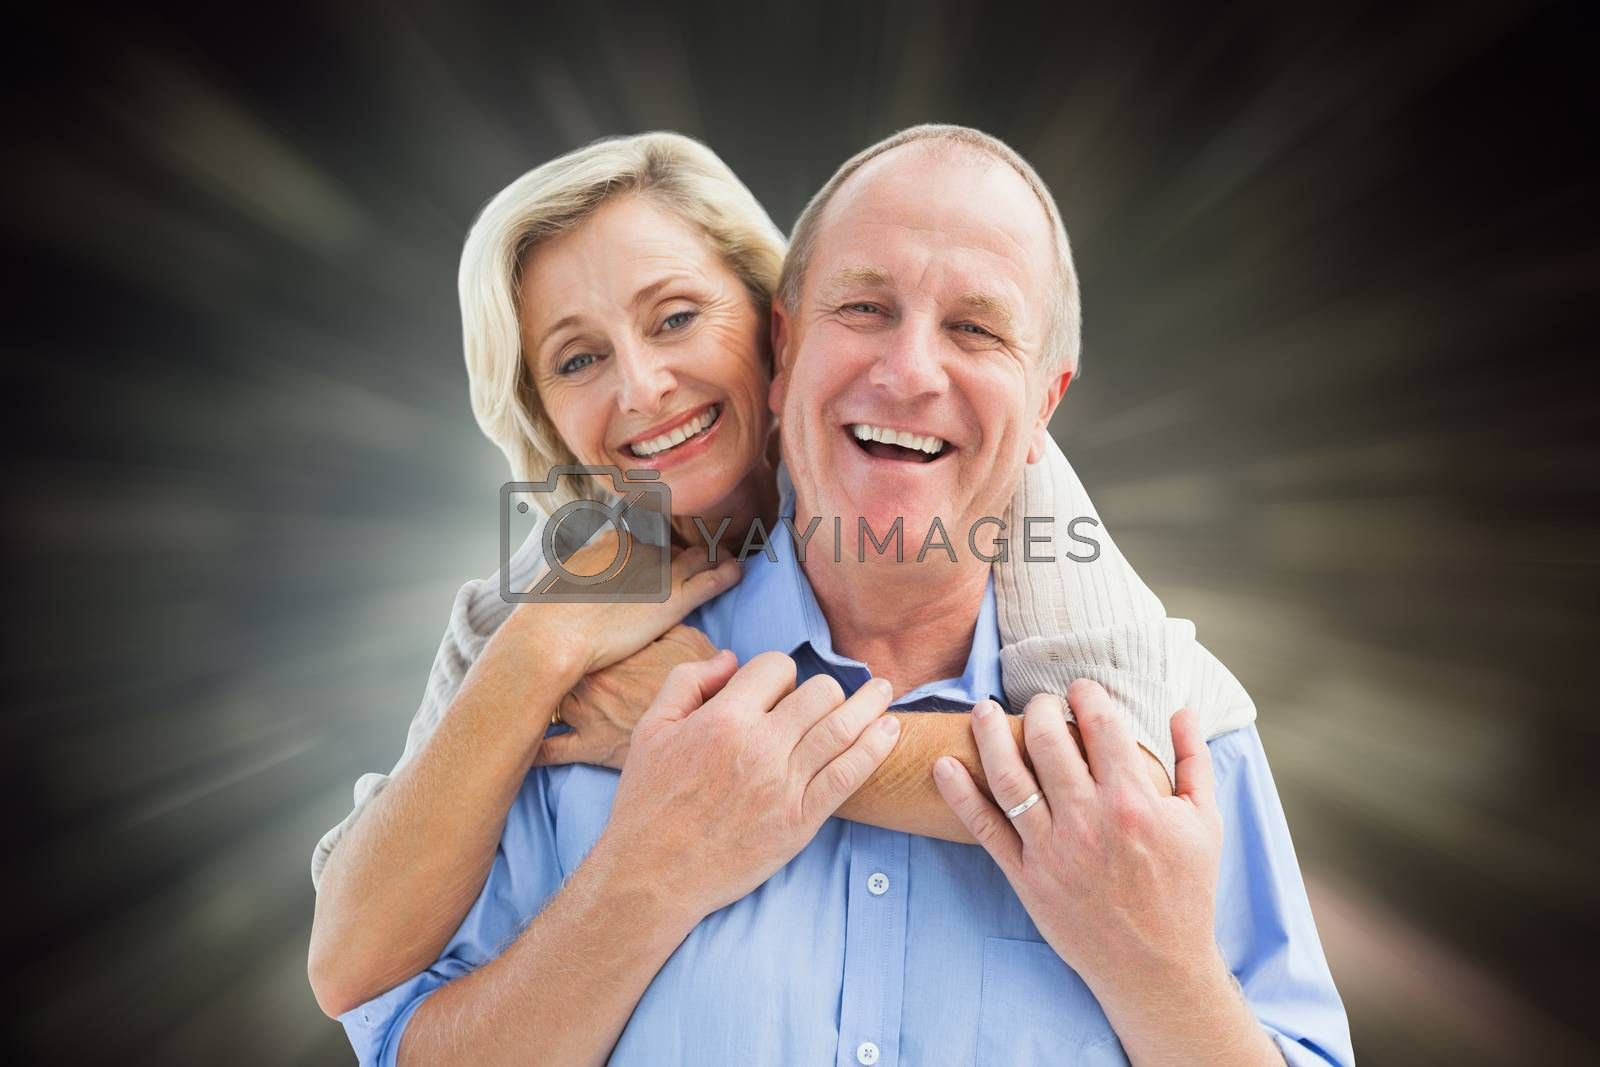 Happy mature couple embracing smiling at camera against black abstract light spot design